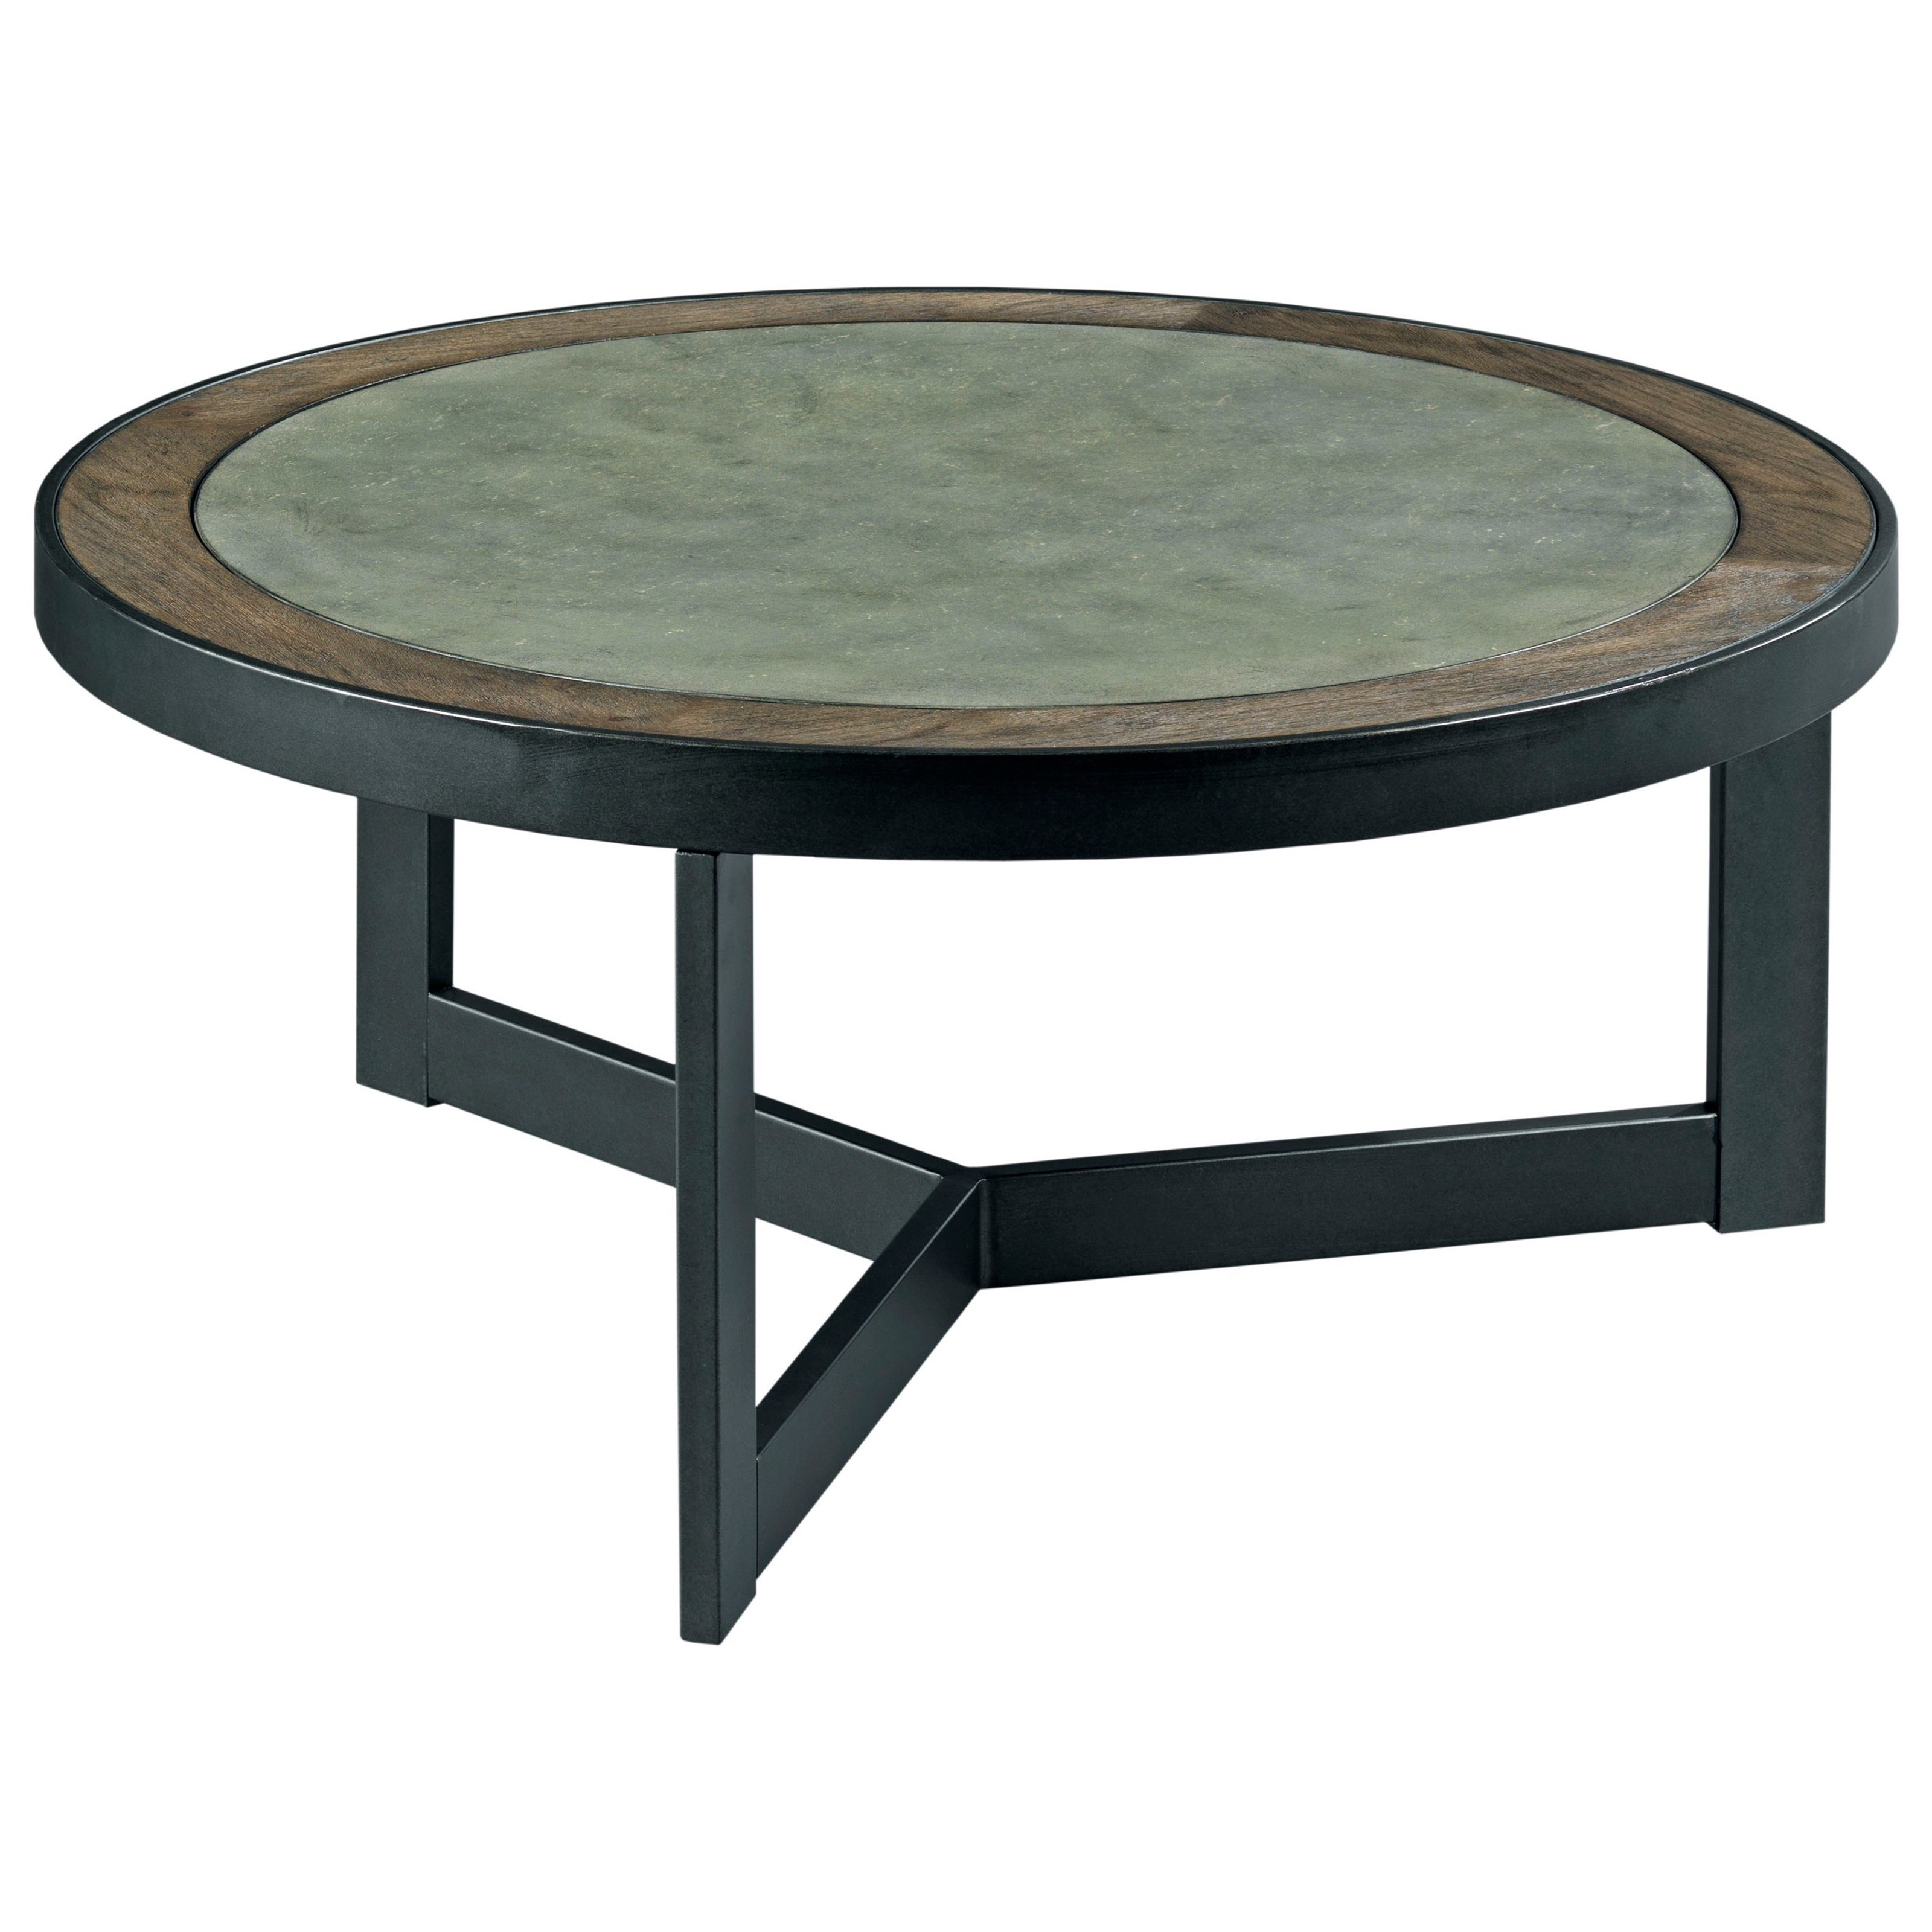 Hammary 650 650 911 round cocktail table gill brothers for Cocktail 911